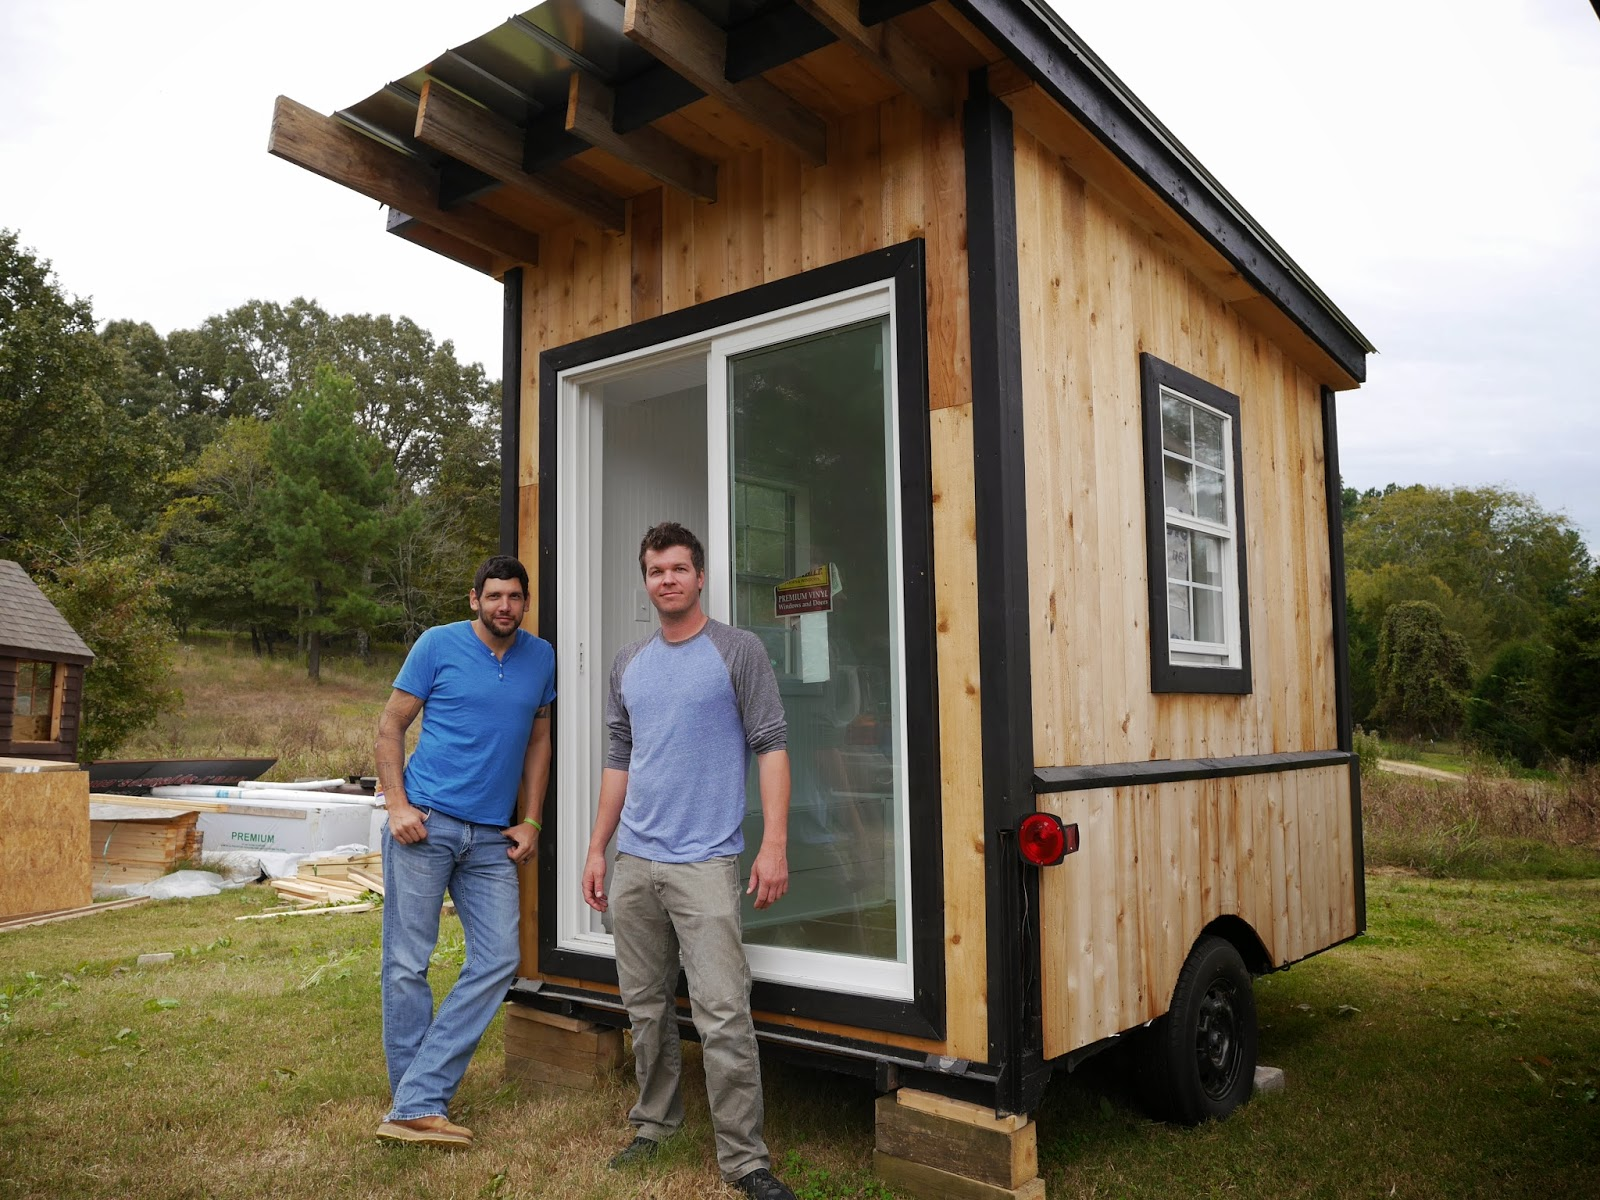 HANDS ON TINY HOUSE BUILDING WORKSHOP, with Tiny Healthy Homes June 25th – June 29th, Tiny Healthy Homes has been teaching these hands-on courses for years and has teamed up with Tiny House Courses B.C. to bring one to the big island, with more in the works around B.C.!